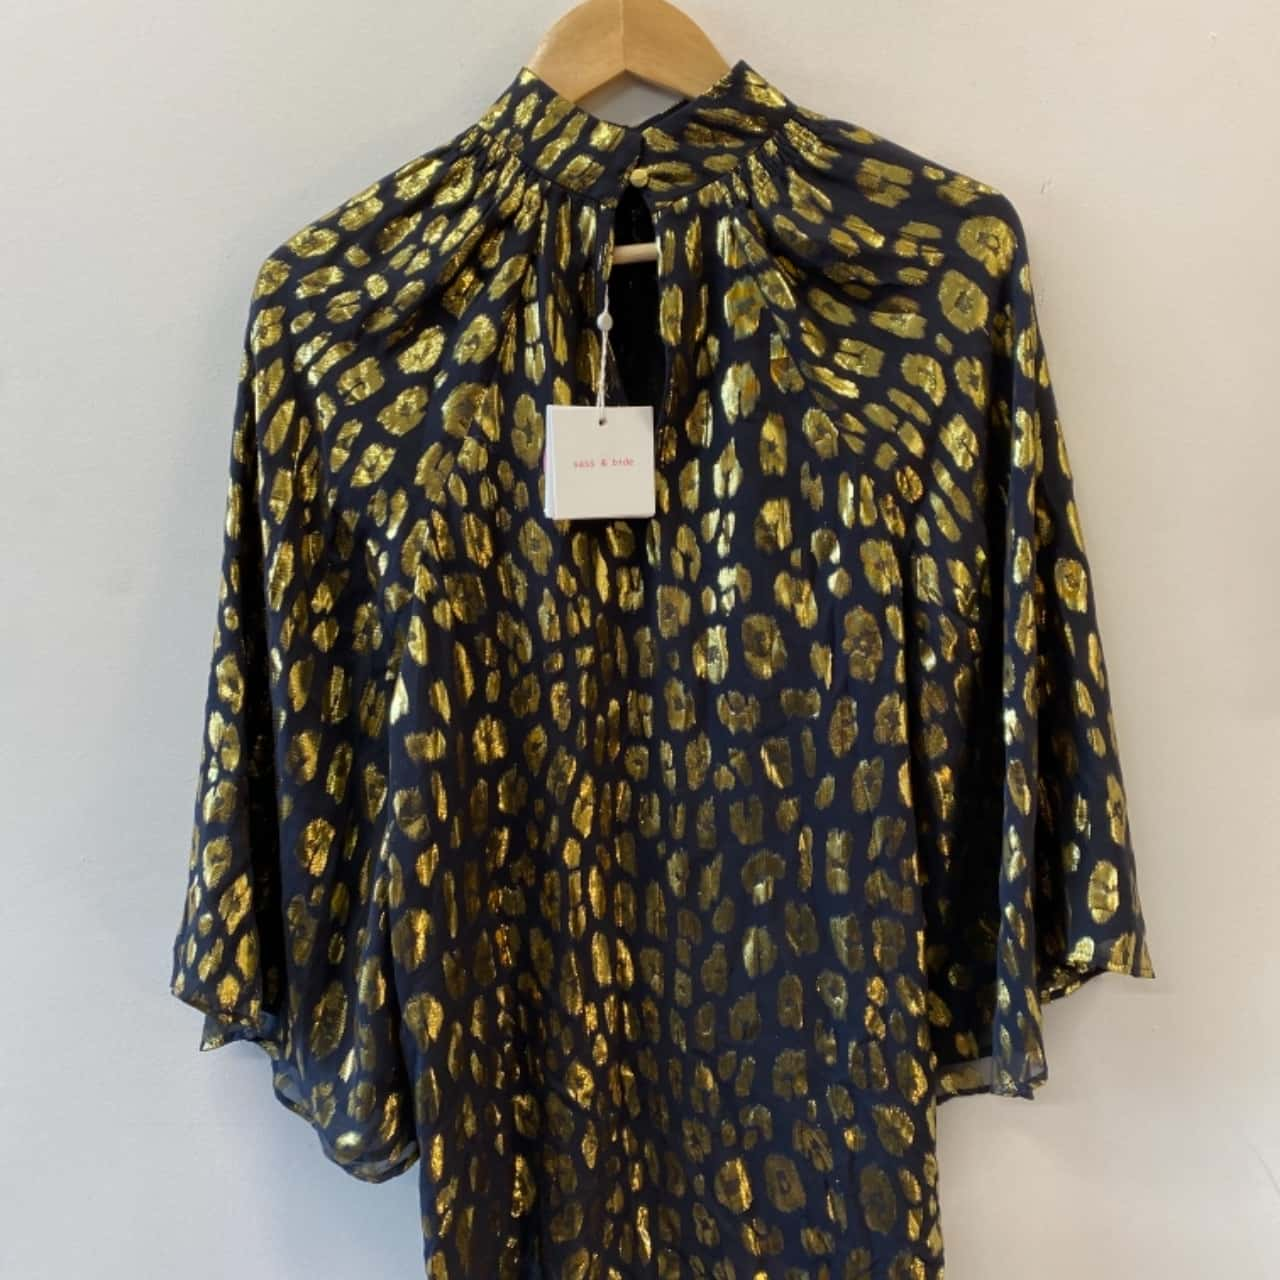 Sass & Bide Womens Size 8 Black /Gold High Neck Silk Blend Top - New with Tags